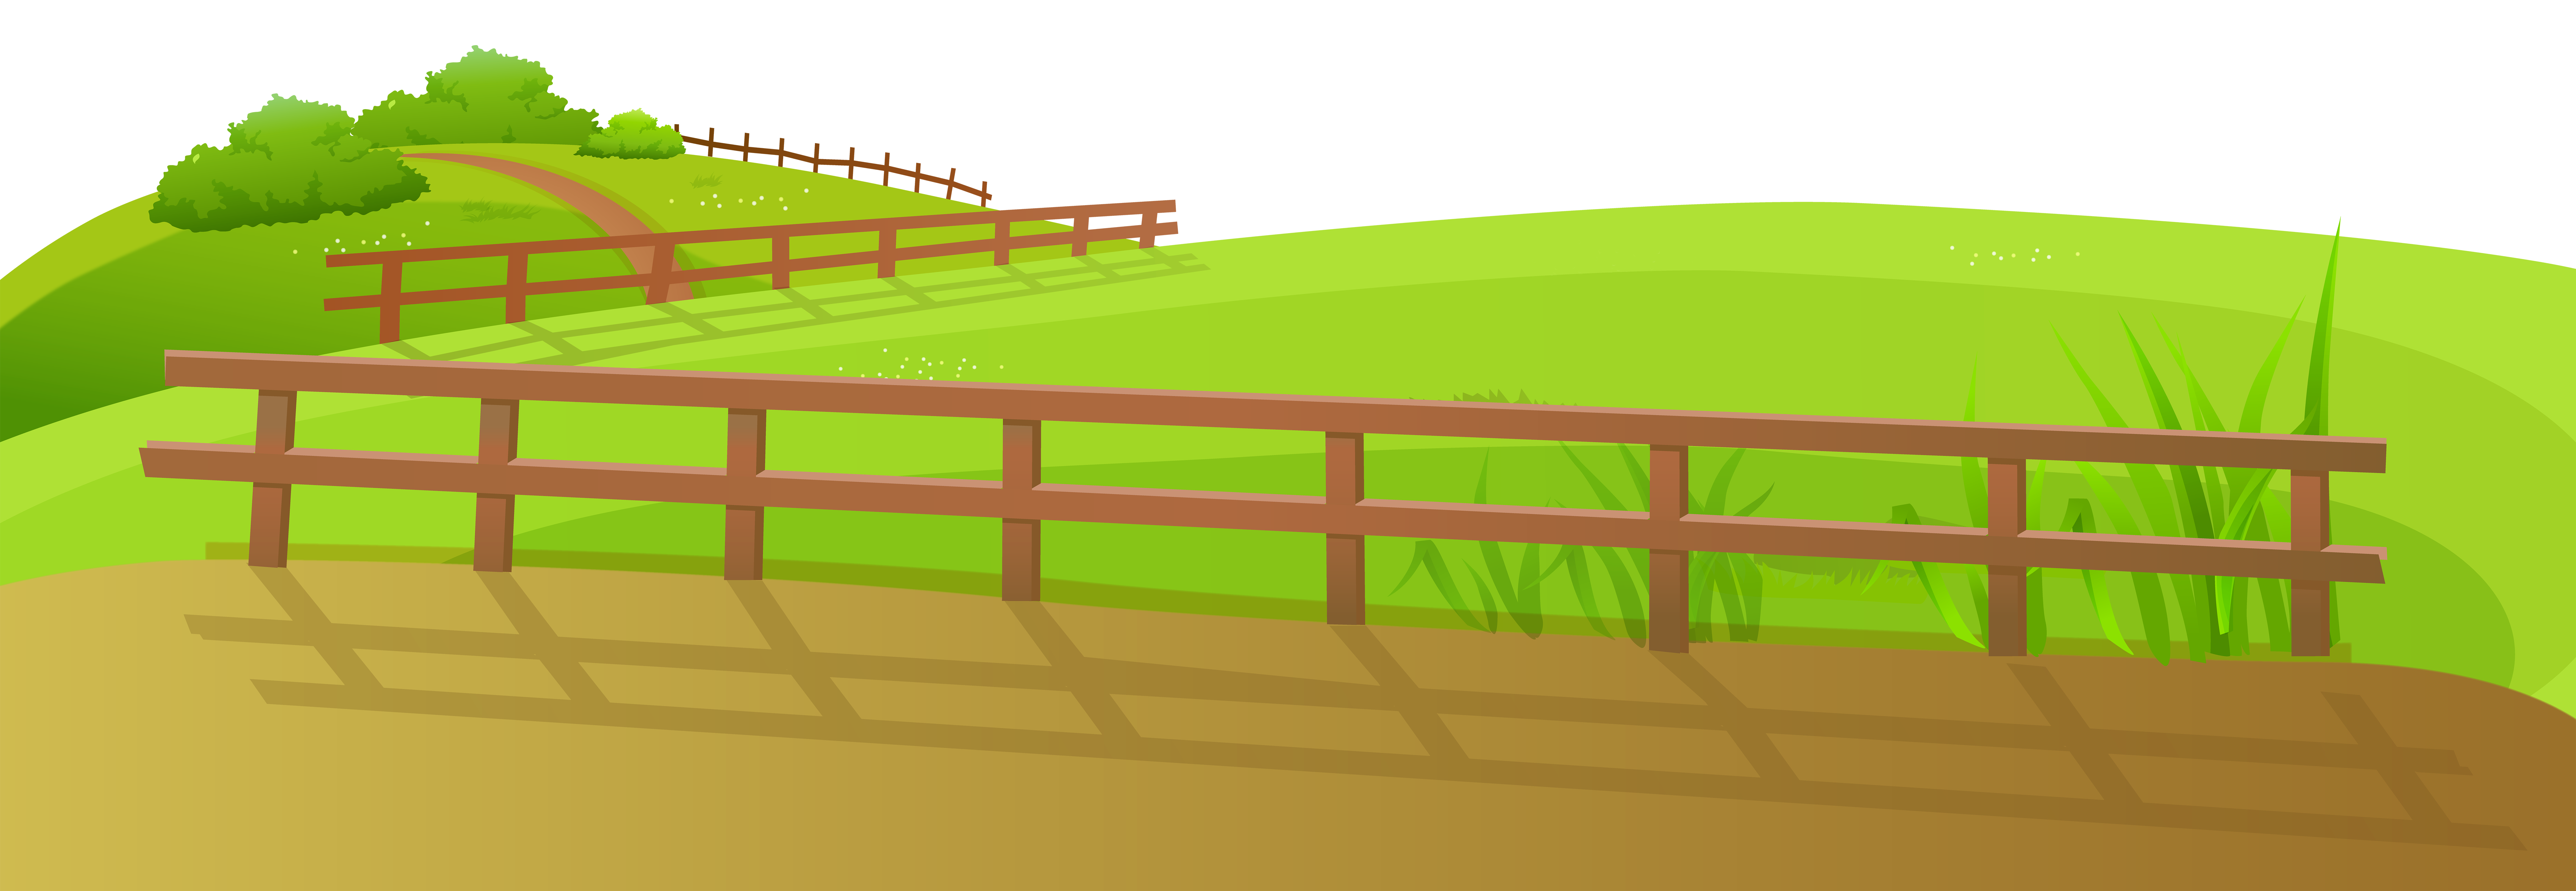 svg royalty free library Western fence clipart. Grass ground with png